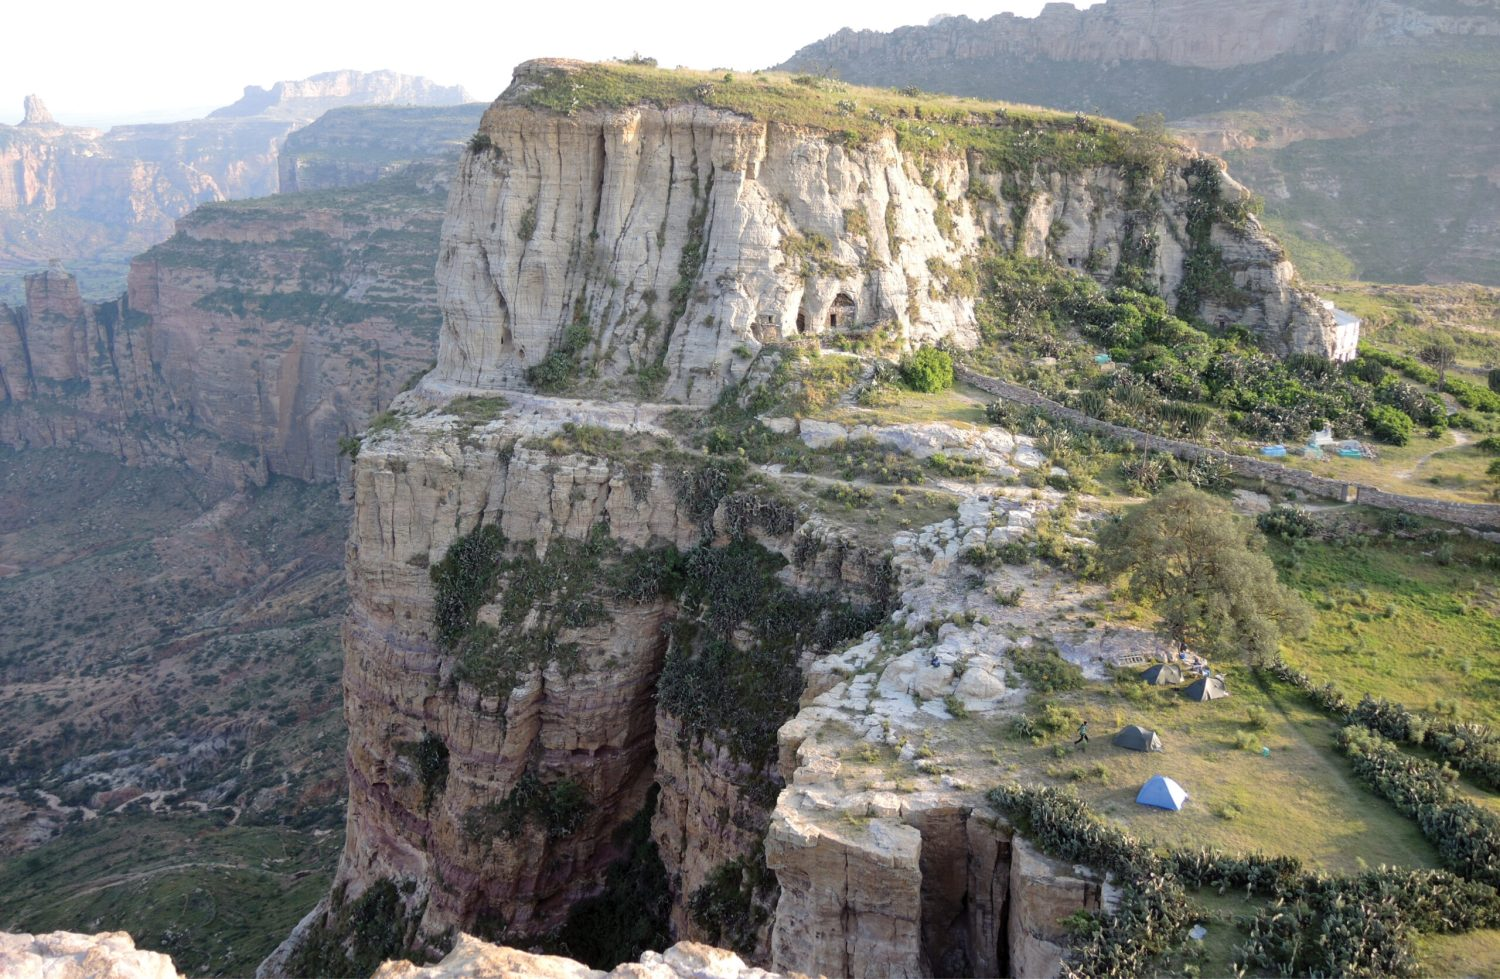 Above A large number of churches are built into the cliffs in the northern Ethiopian province of Tigray. Here we look down over the site of the hermit cave church of Daniel Qorqor and its larger neighbour, the church of Maryam Qorqor. The modern-built facade of the church is visible just at the right edge of the cliff.